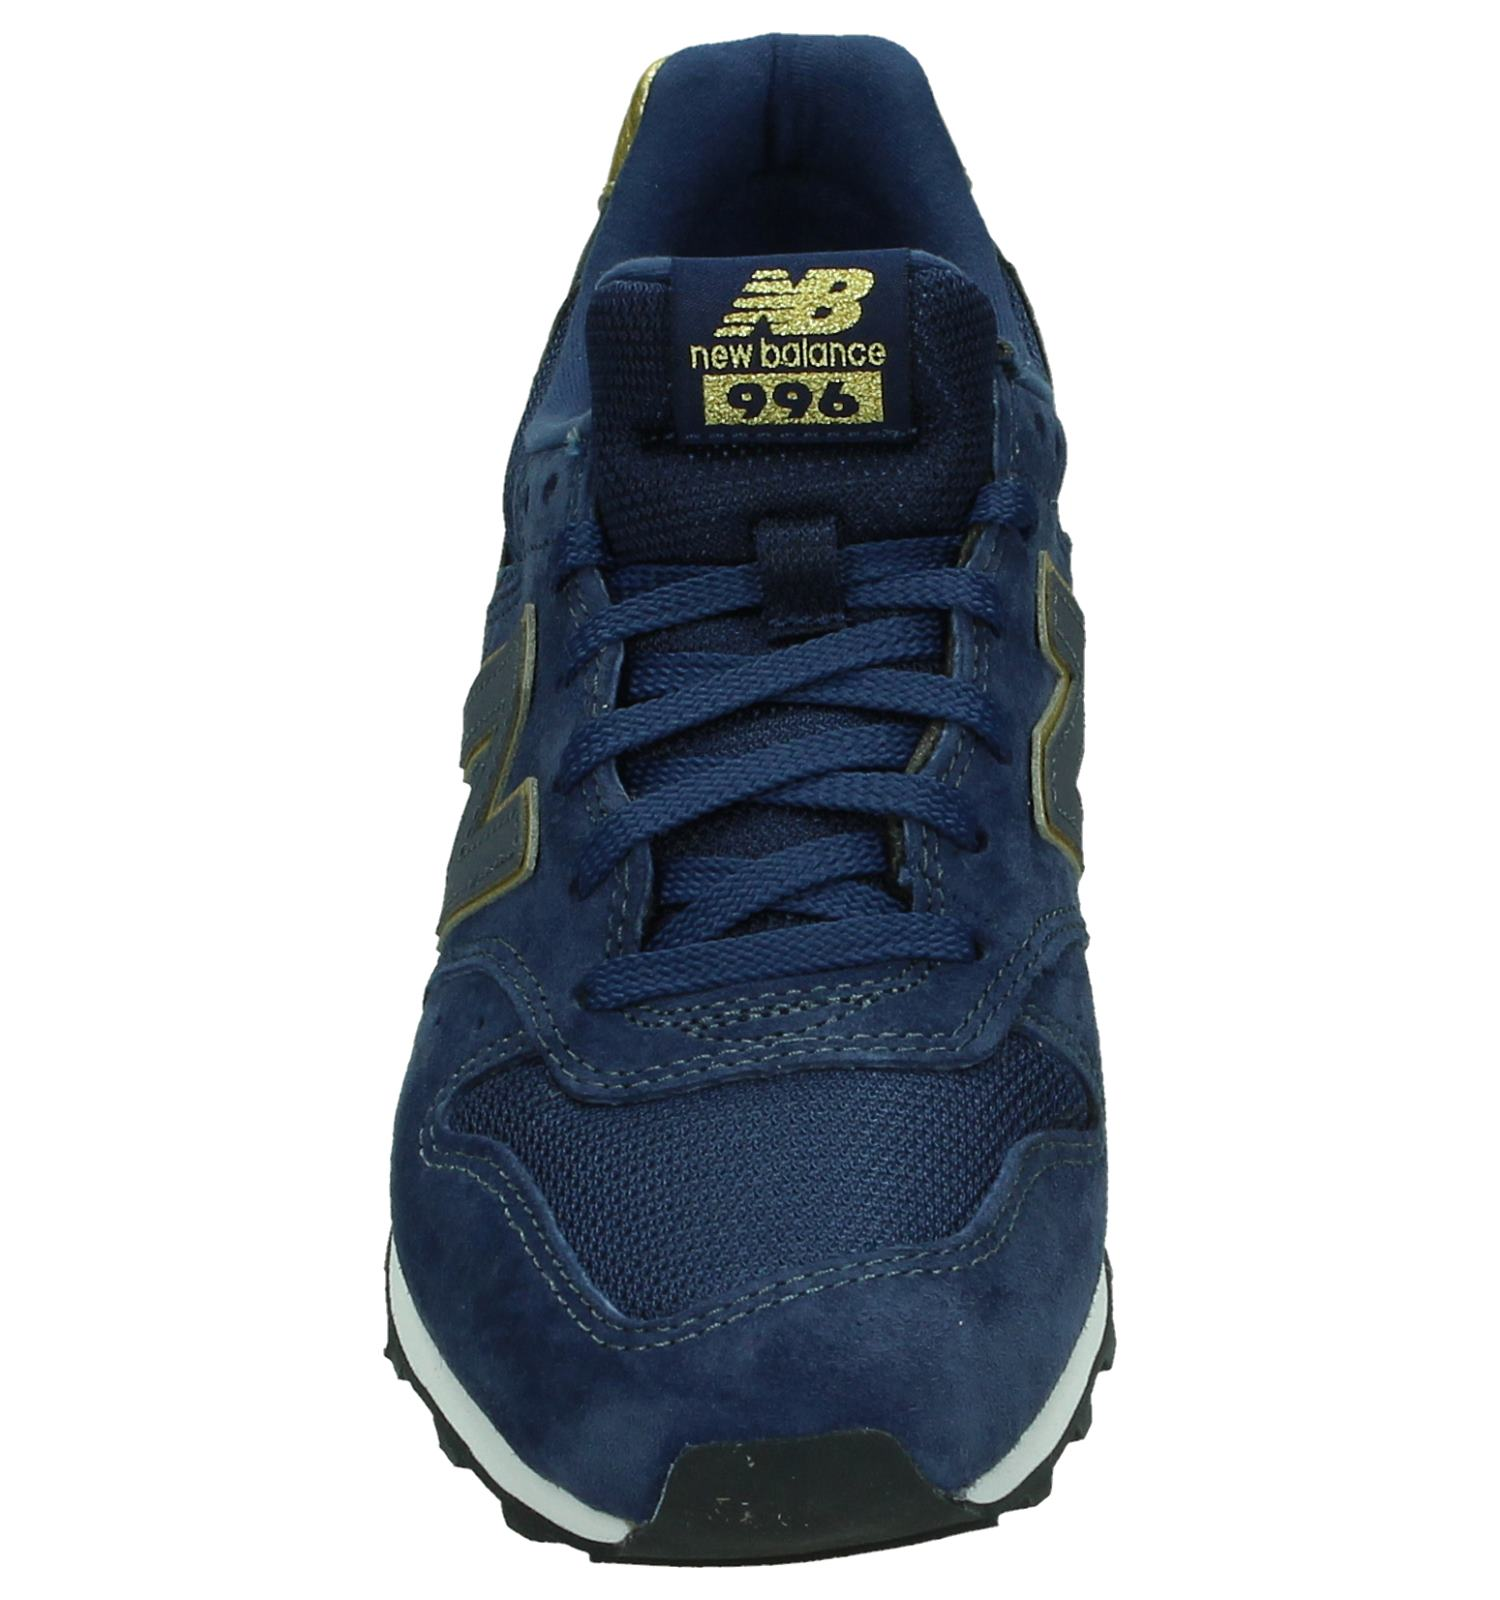 blauwe new balance sneakers wr996 dames